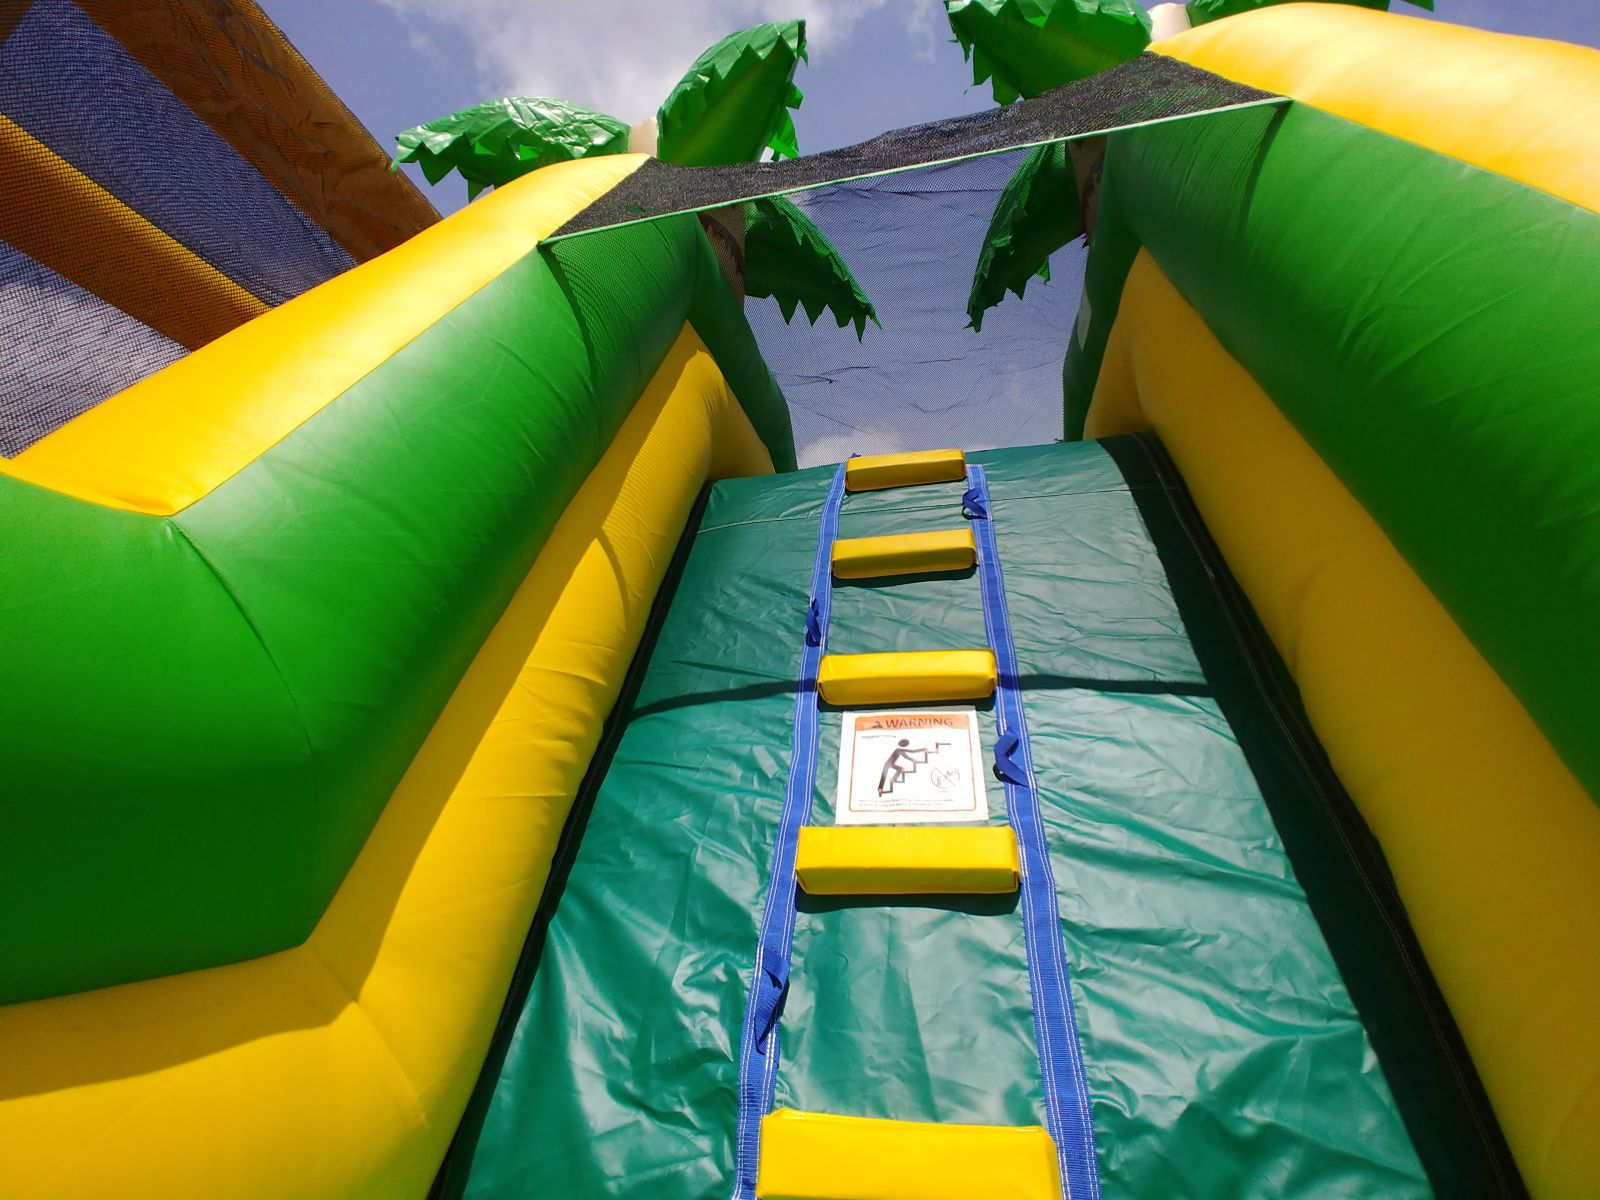 Climbing wall inside tropical inflatable obstacle course